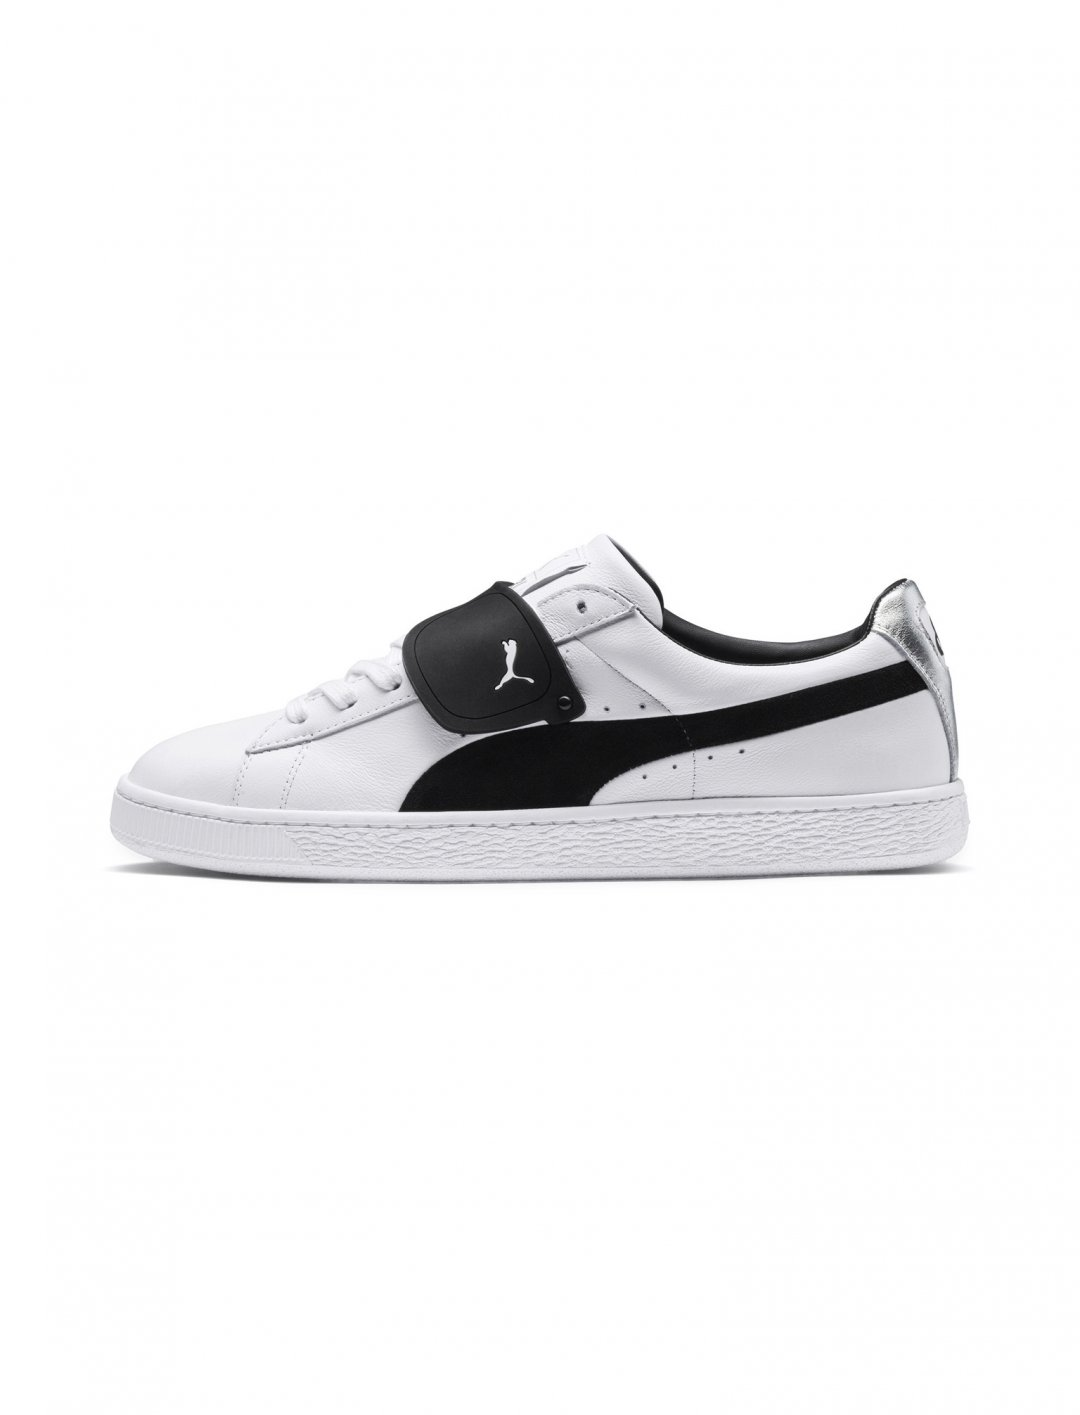 "Suede Sneakers {""id"":12,""product_section_id"":1,""name"":""Shoes"",""order"":12} PUMA x KARL LAGERFELD"